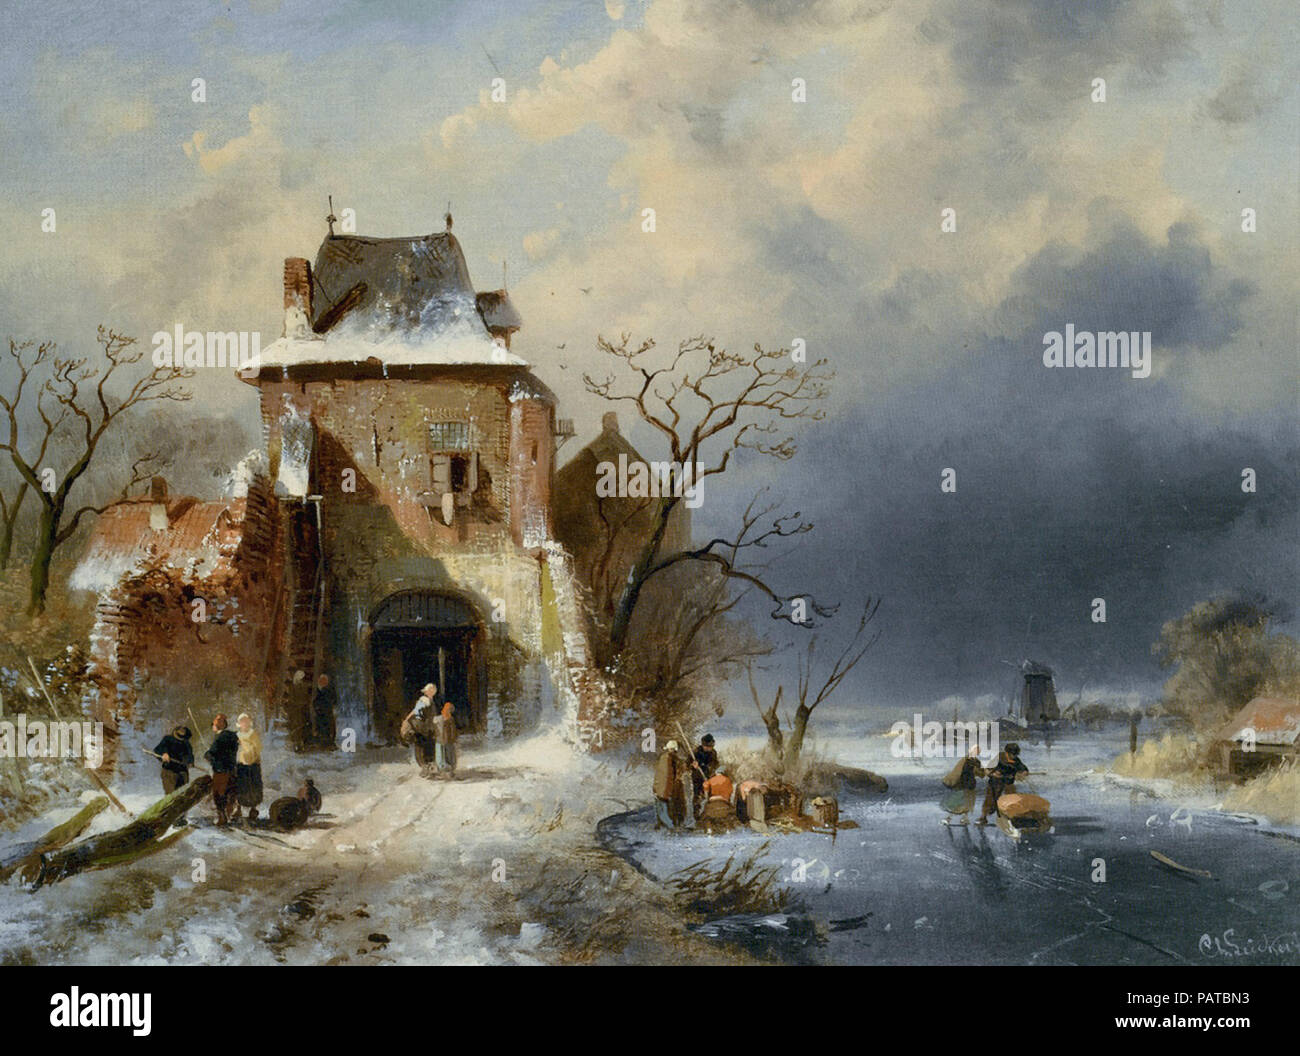 Leickert  Charles Henri Joseph - Winter Scene with Figures - Stock Image